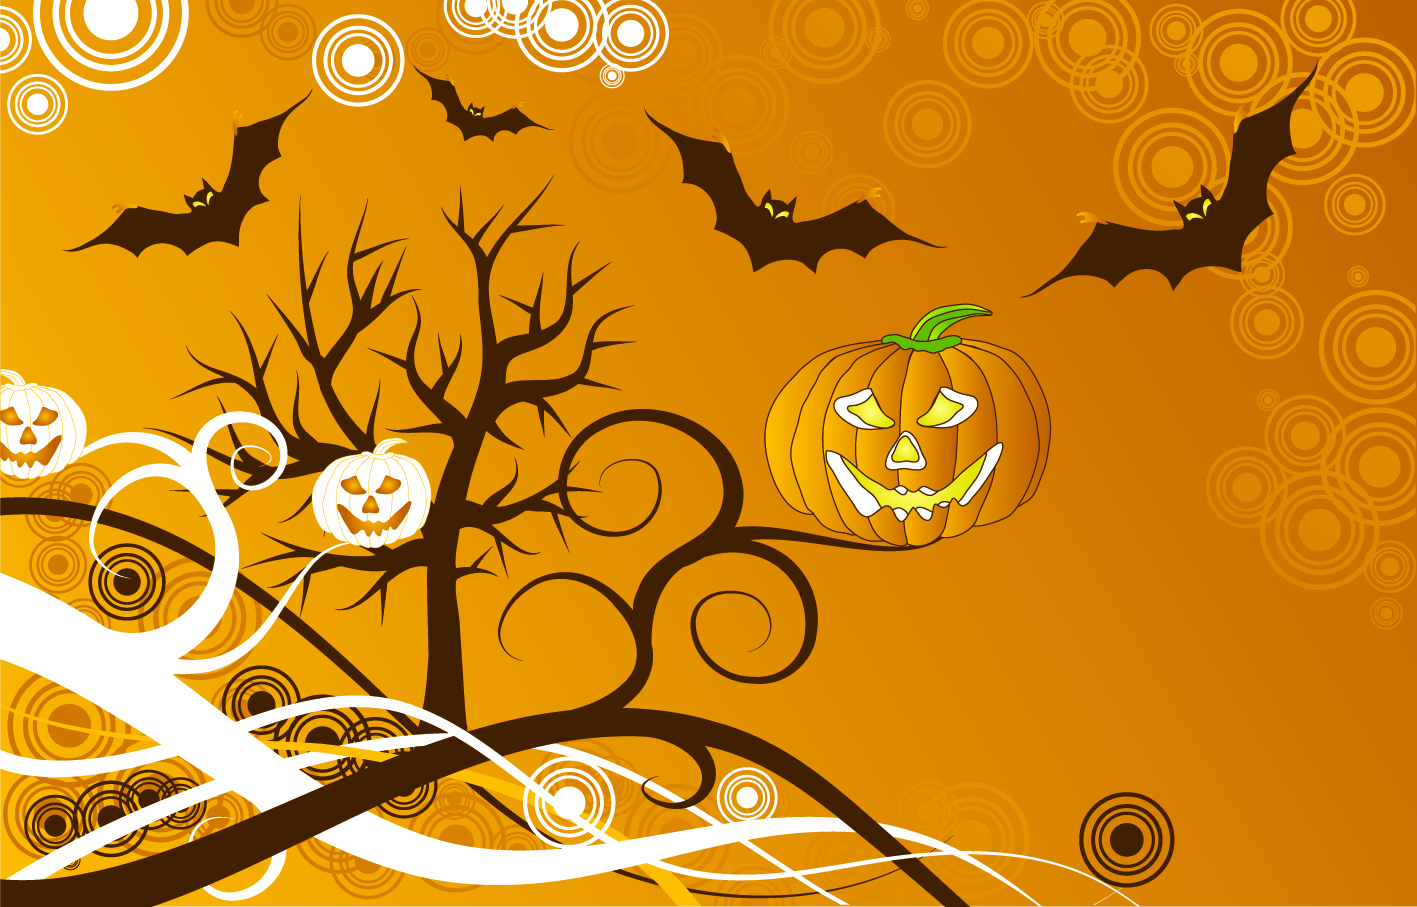 Happy Halloween Images Pictures Photos Clipart 2017 Free Download ...